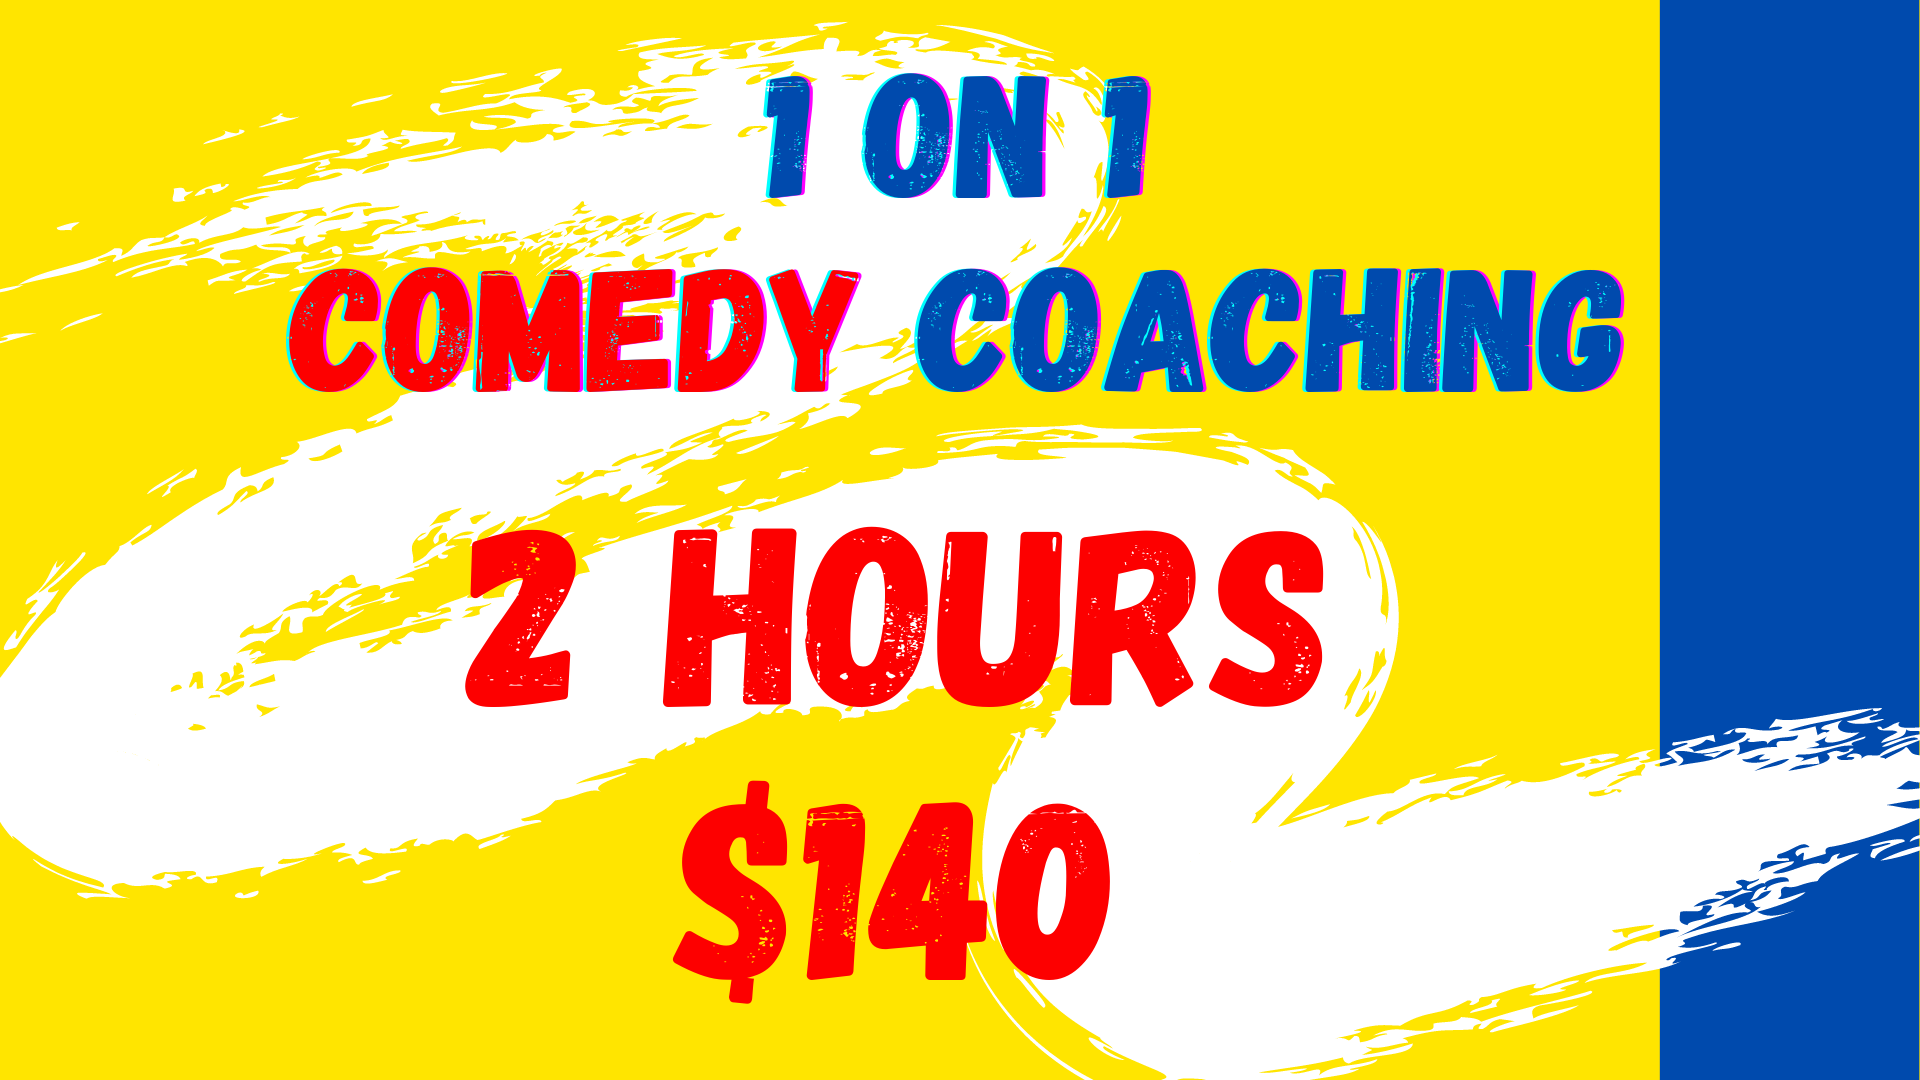 1 on 1 Comedy Coaching - 2hr $140